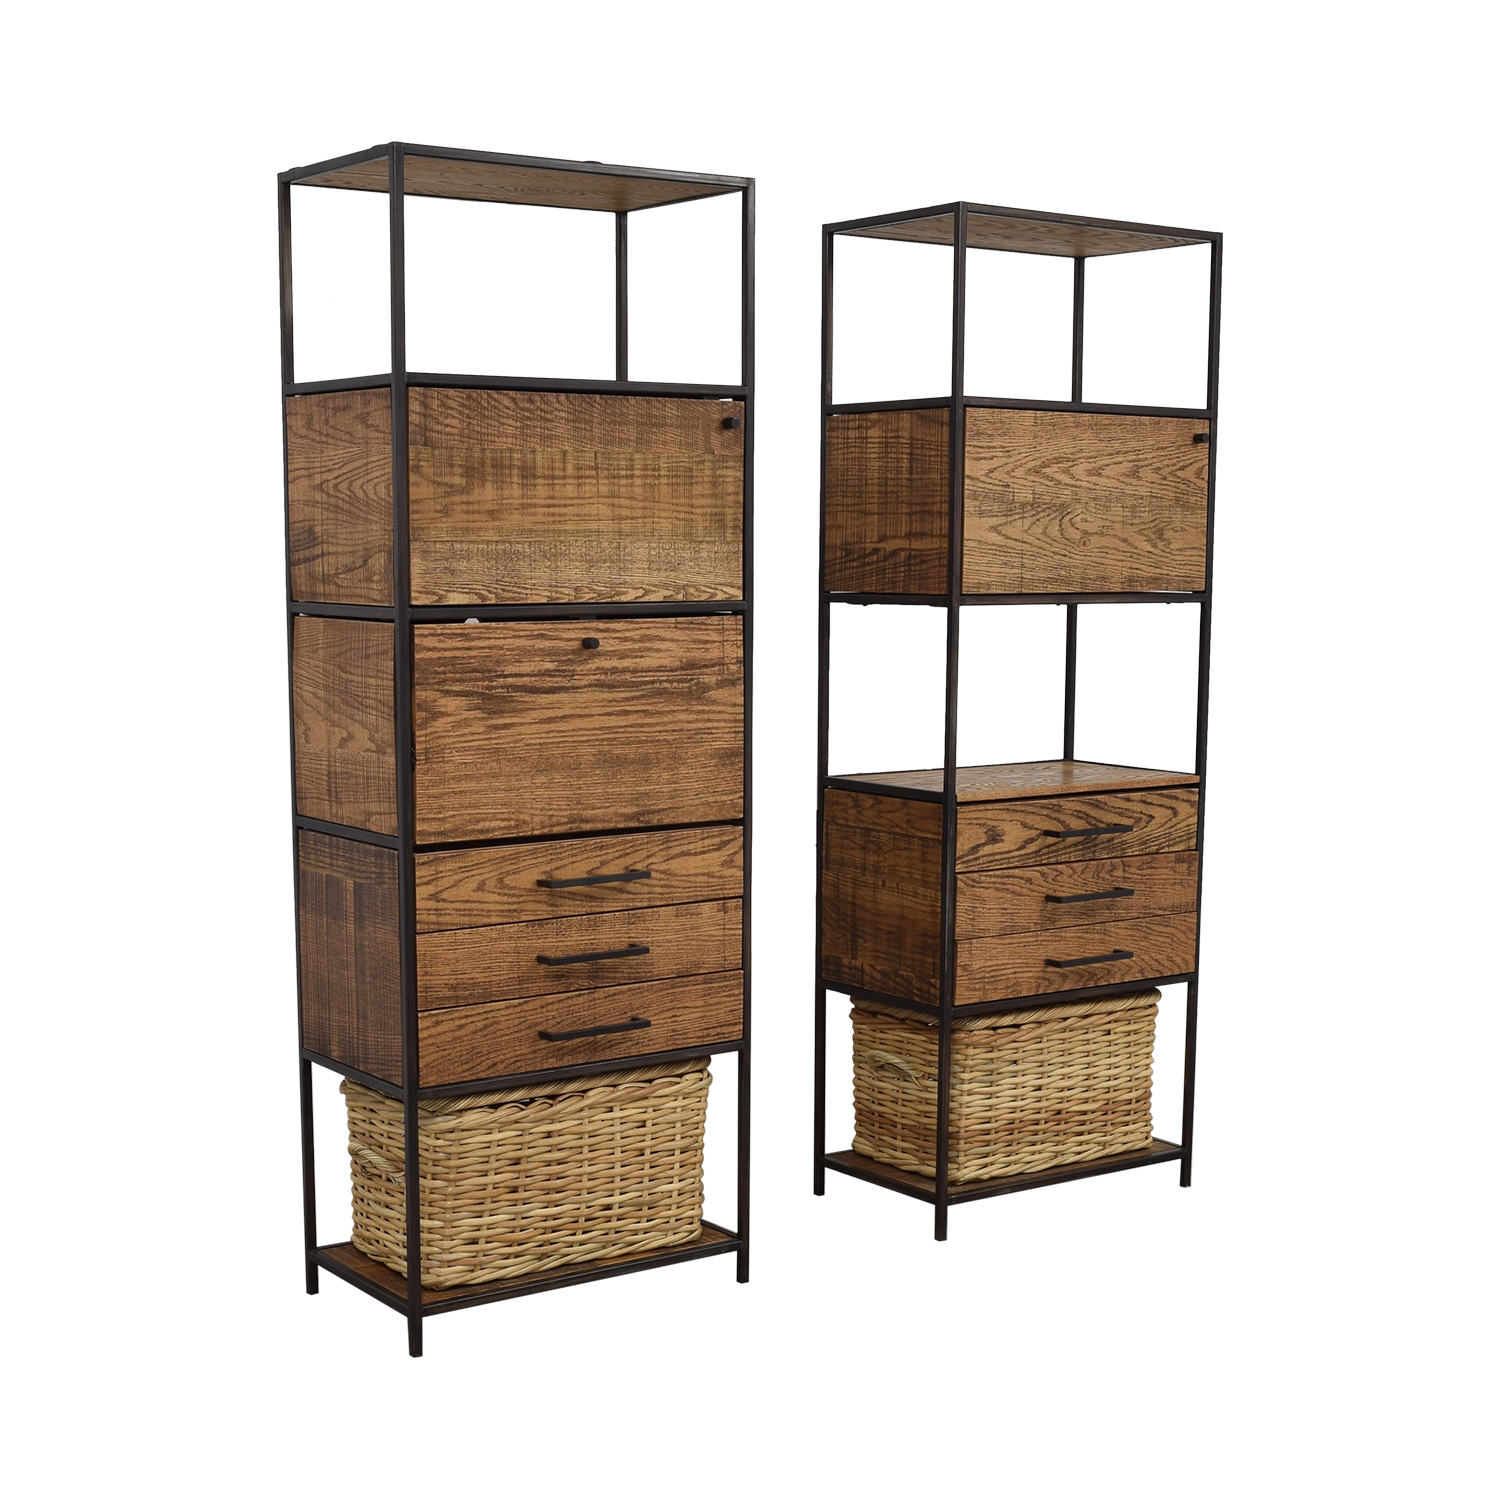 Recycled Brooklyn Custom Bookshelves with Drawers and Wicker Basket / Bookcases & Shelving